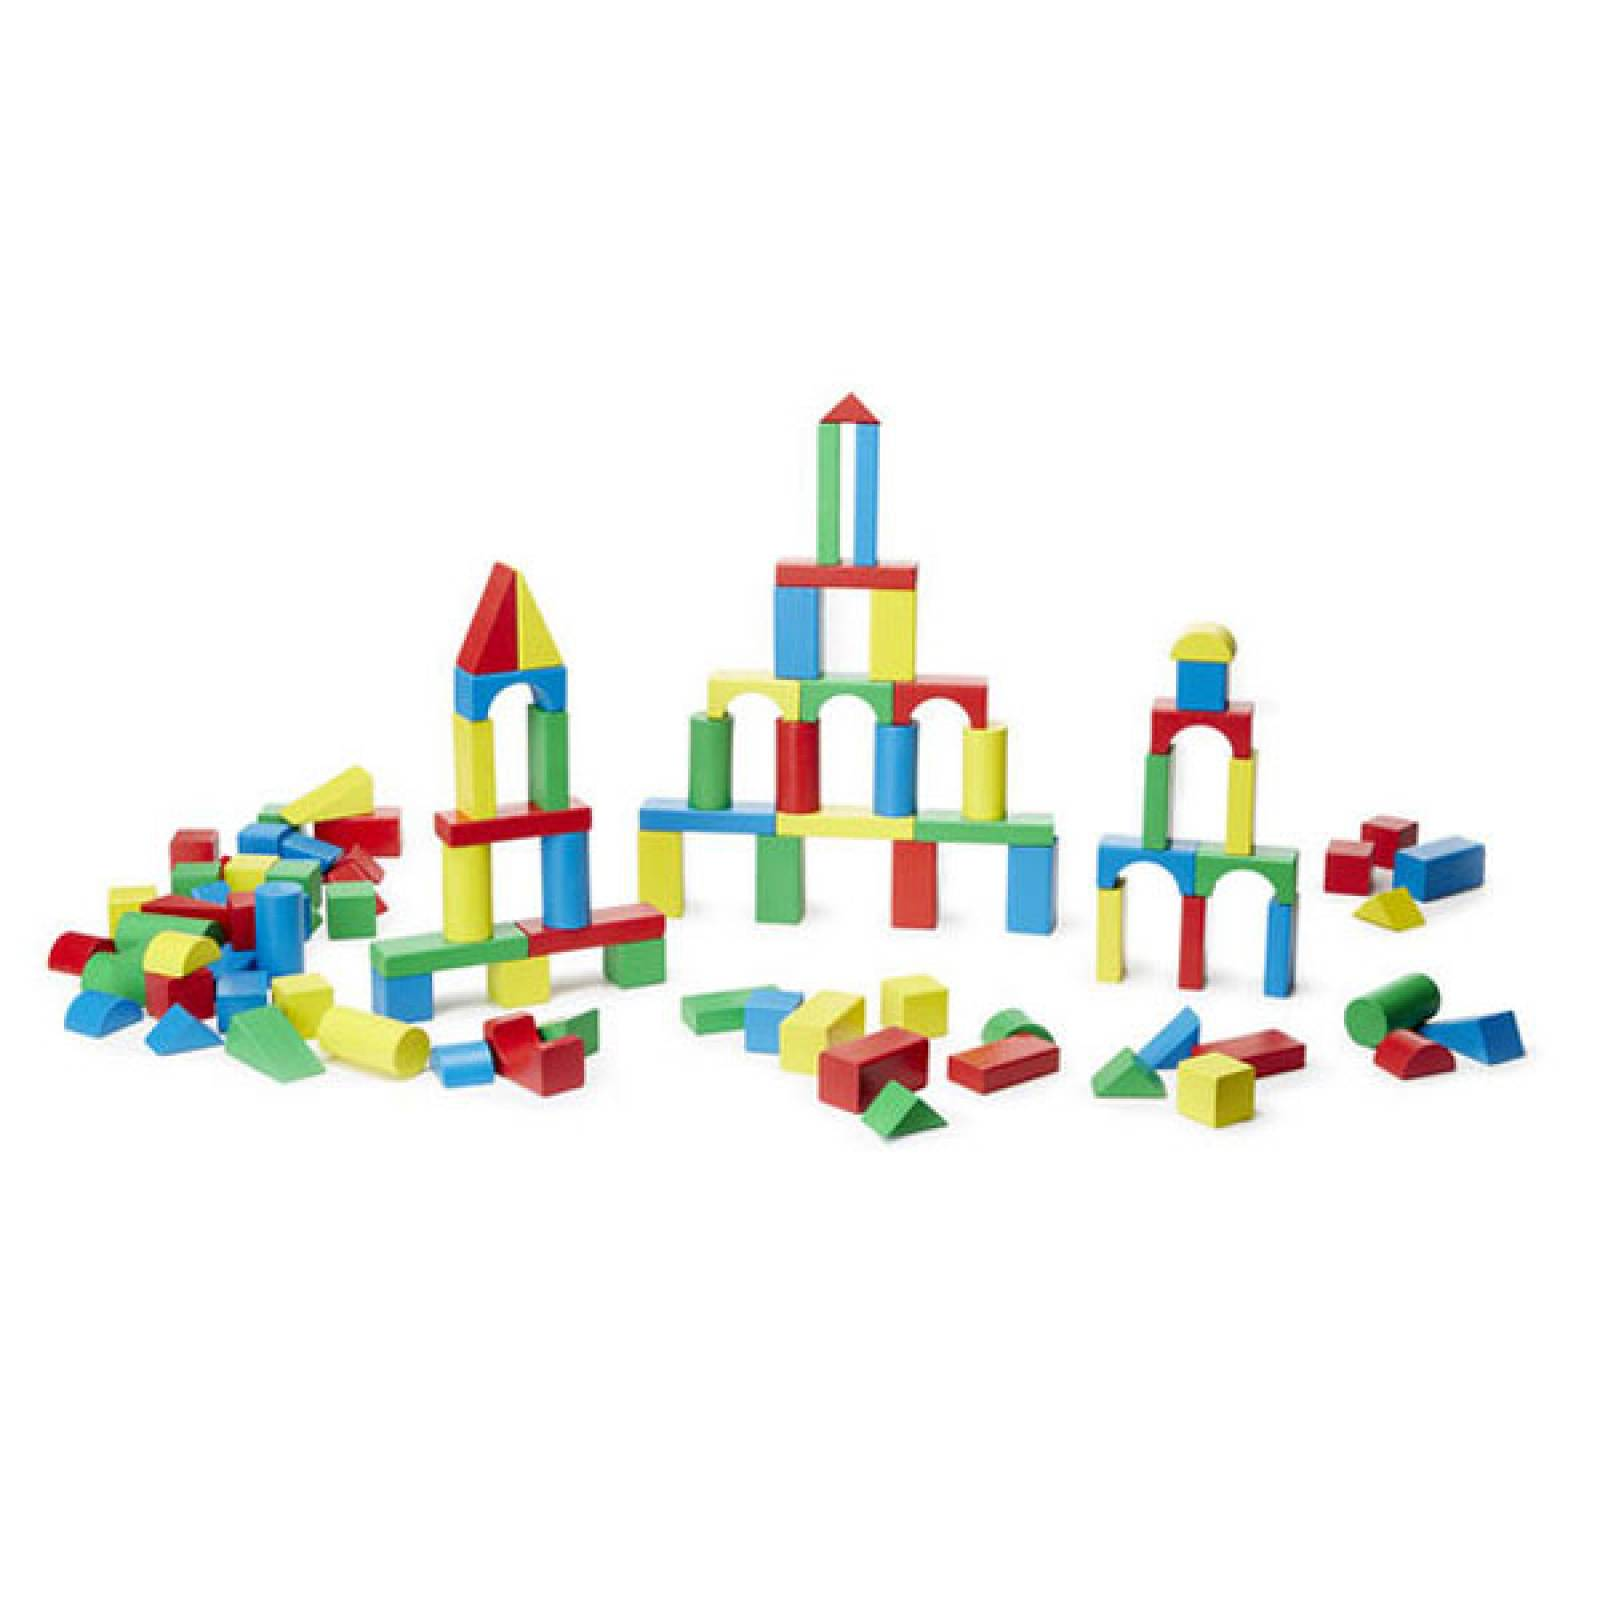 Set Of 100 Wooden Blocks By Melissa & Doug 3+